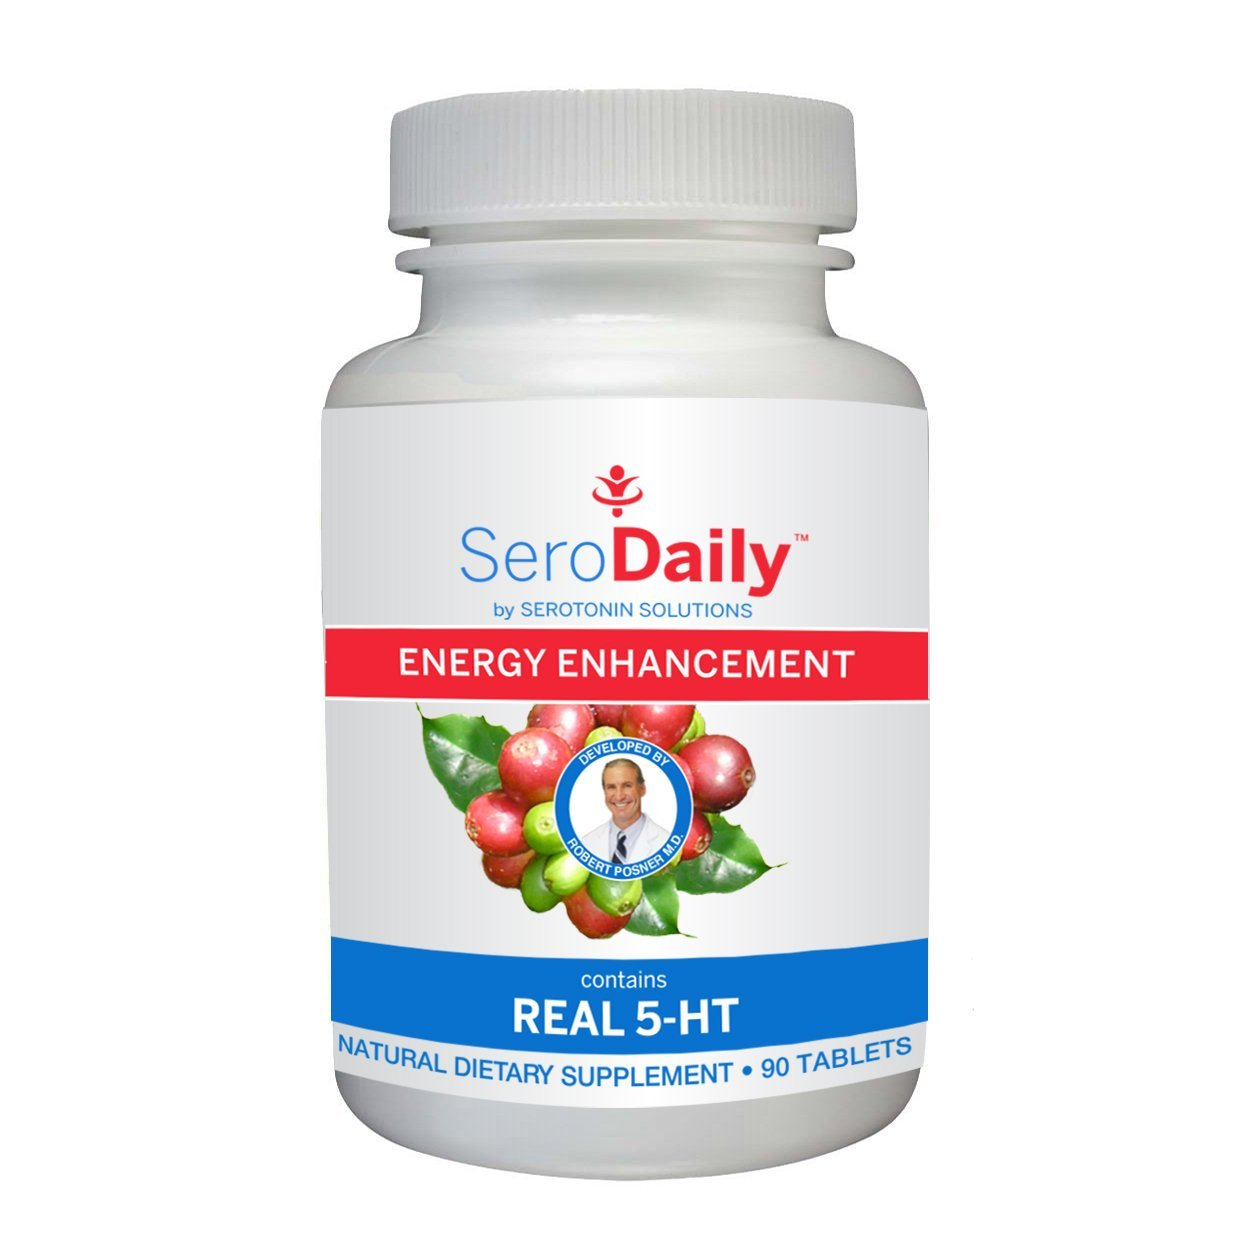 Dr. Posner's 5-HT Serotonin Daily Multivitamin - Boost Energy, Accelerate Mood, and Get Your Daily Dose of Multivitamins, Best Multivitamin for Men and Women (90 Caplets)